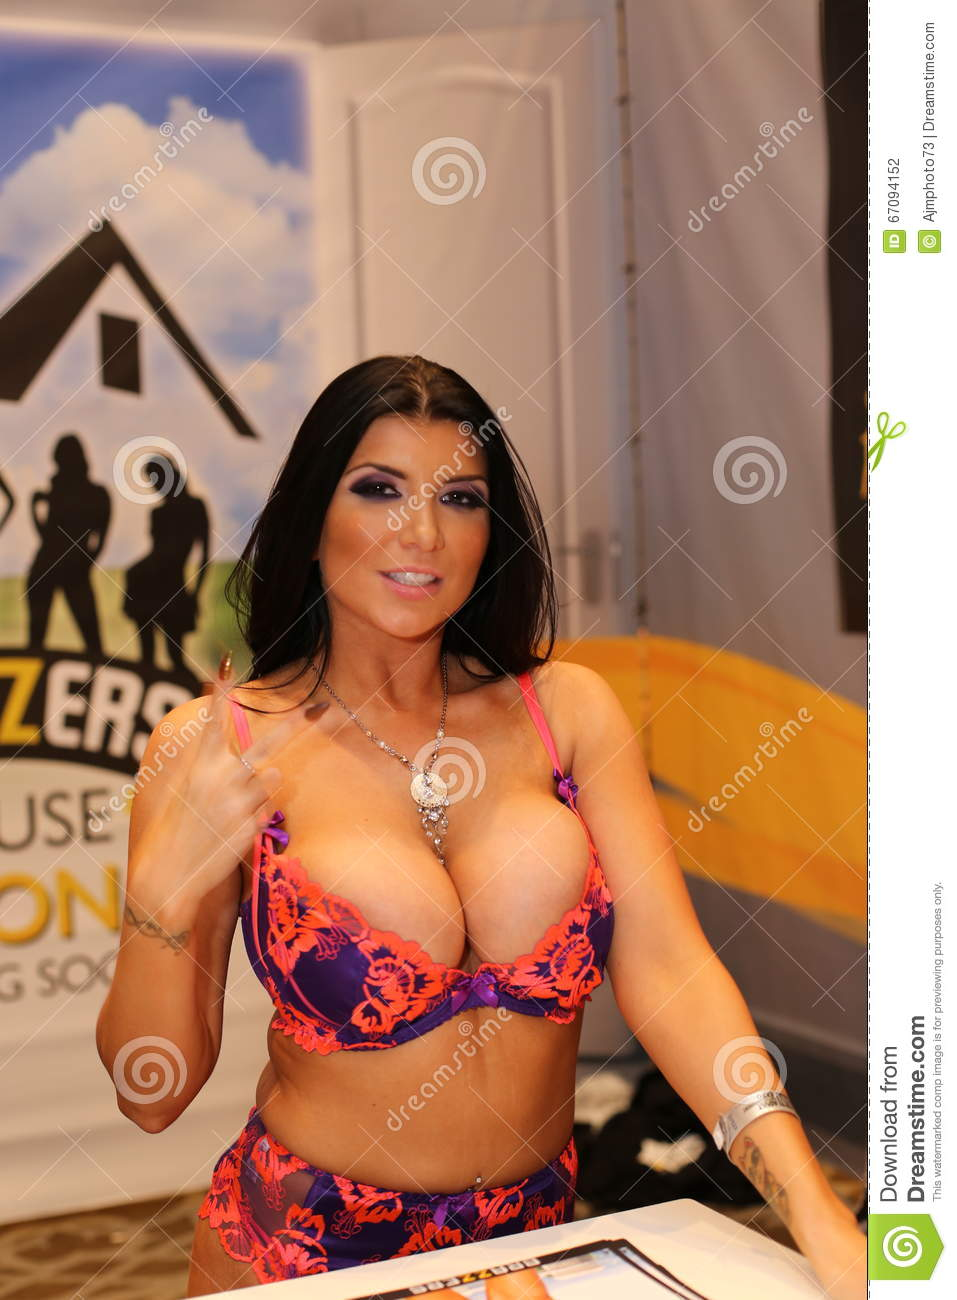 las in Adult vegas entertainment expo